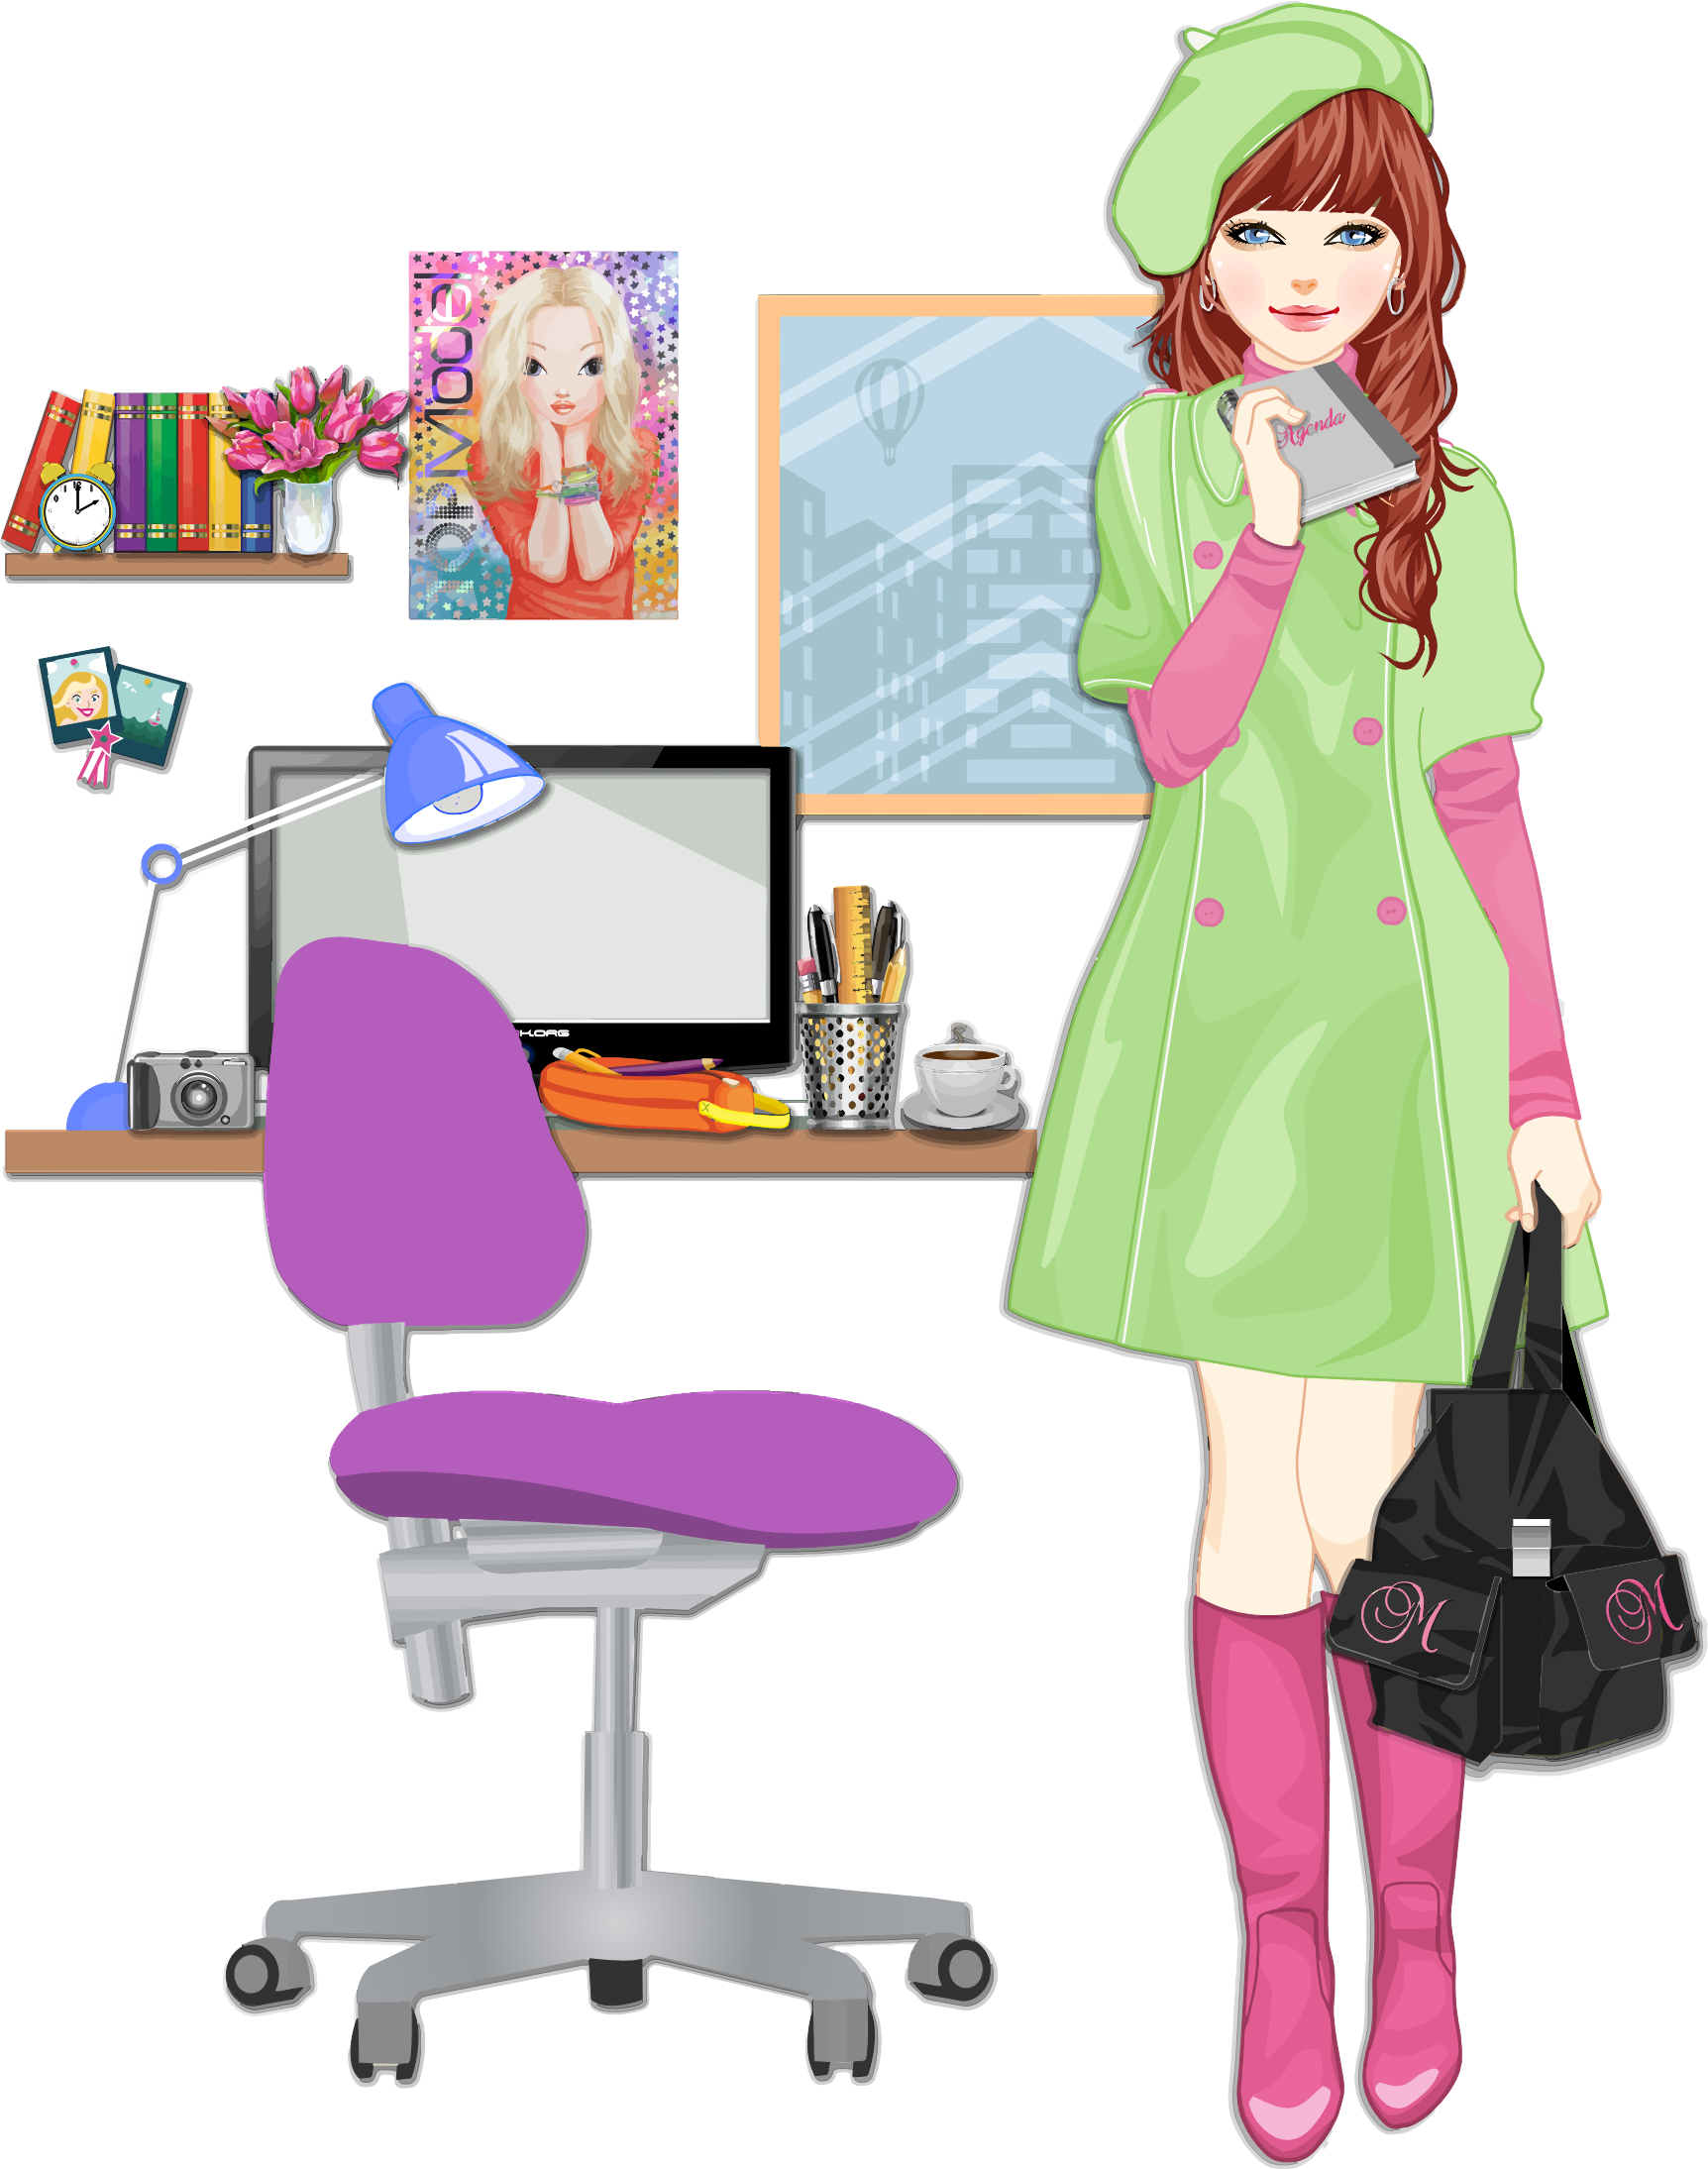 Clipart Girls Room : Girls Room <strong>Light Pink</strong> Girls Desk Chair from openclipart.org size 1724 x 2189 png 1107kB